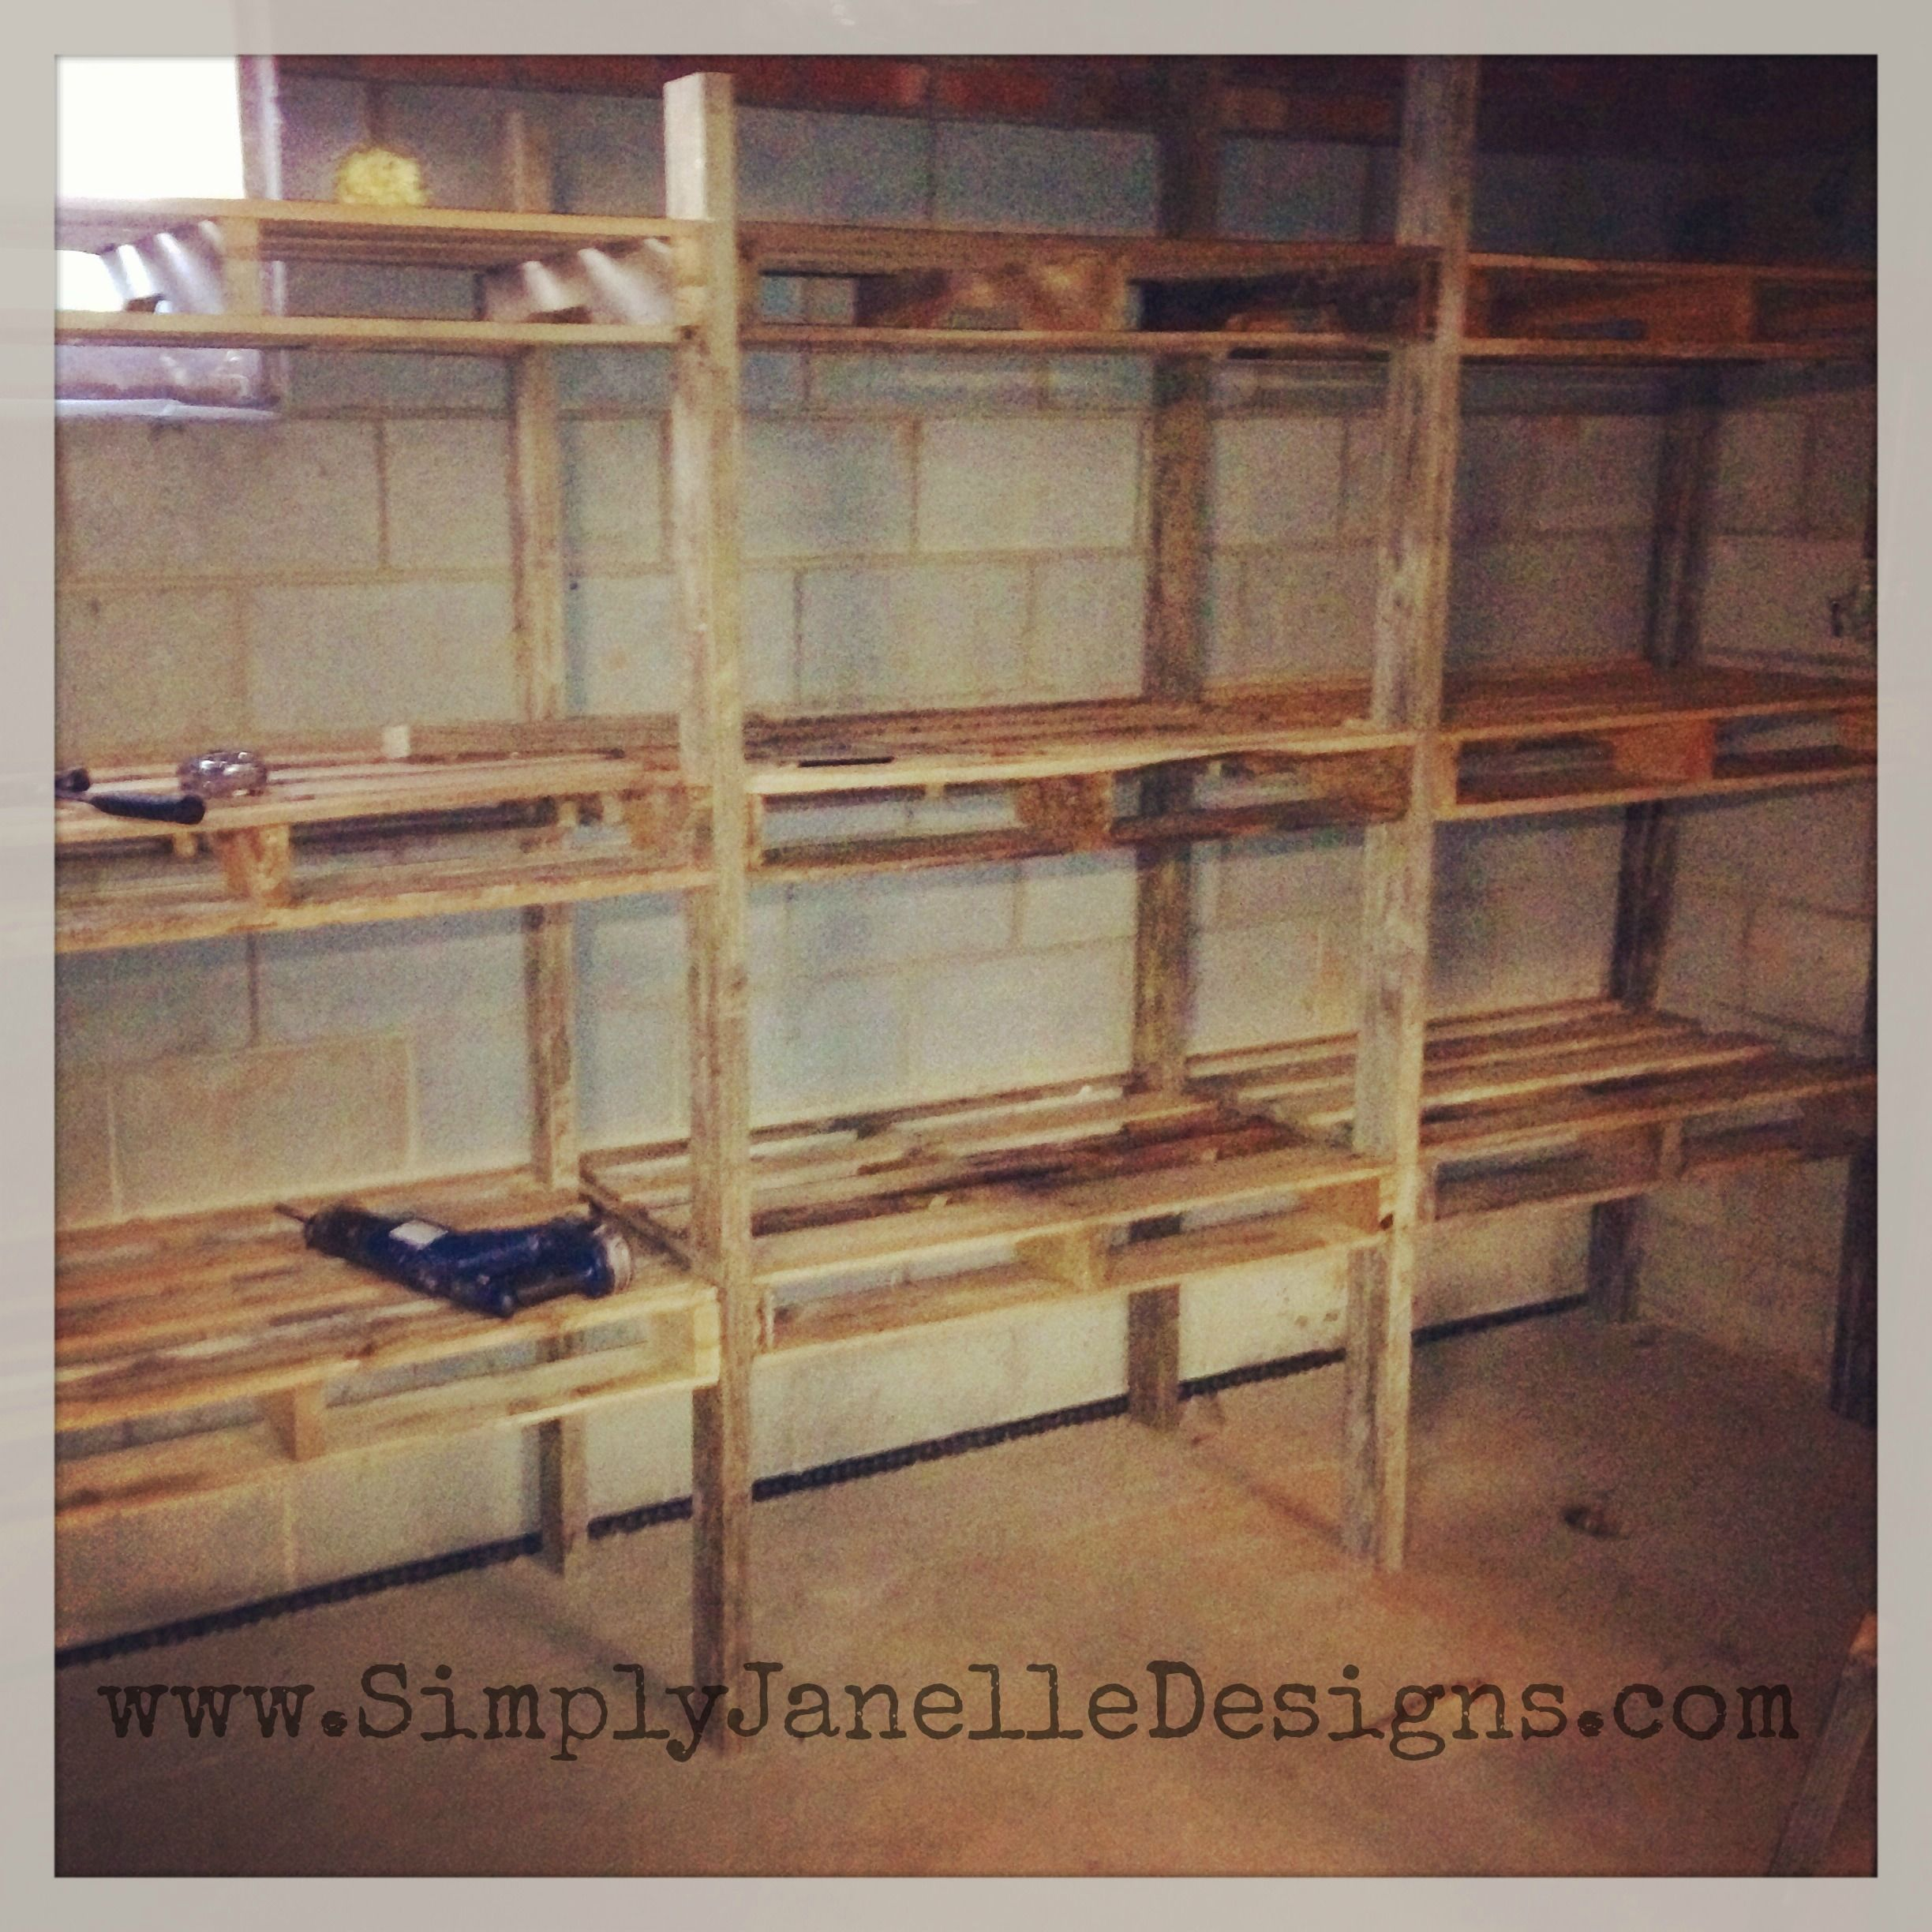 Pallet shelves in our basement simply janelle designs for Pallet ideas